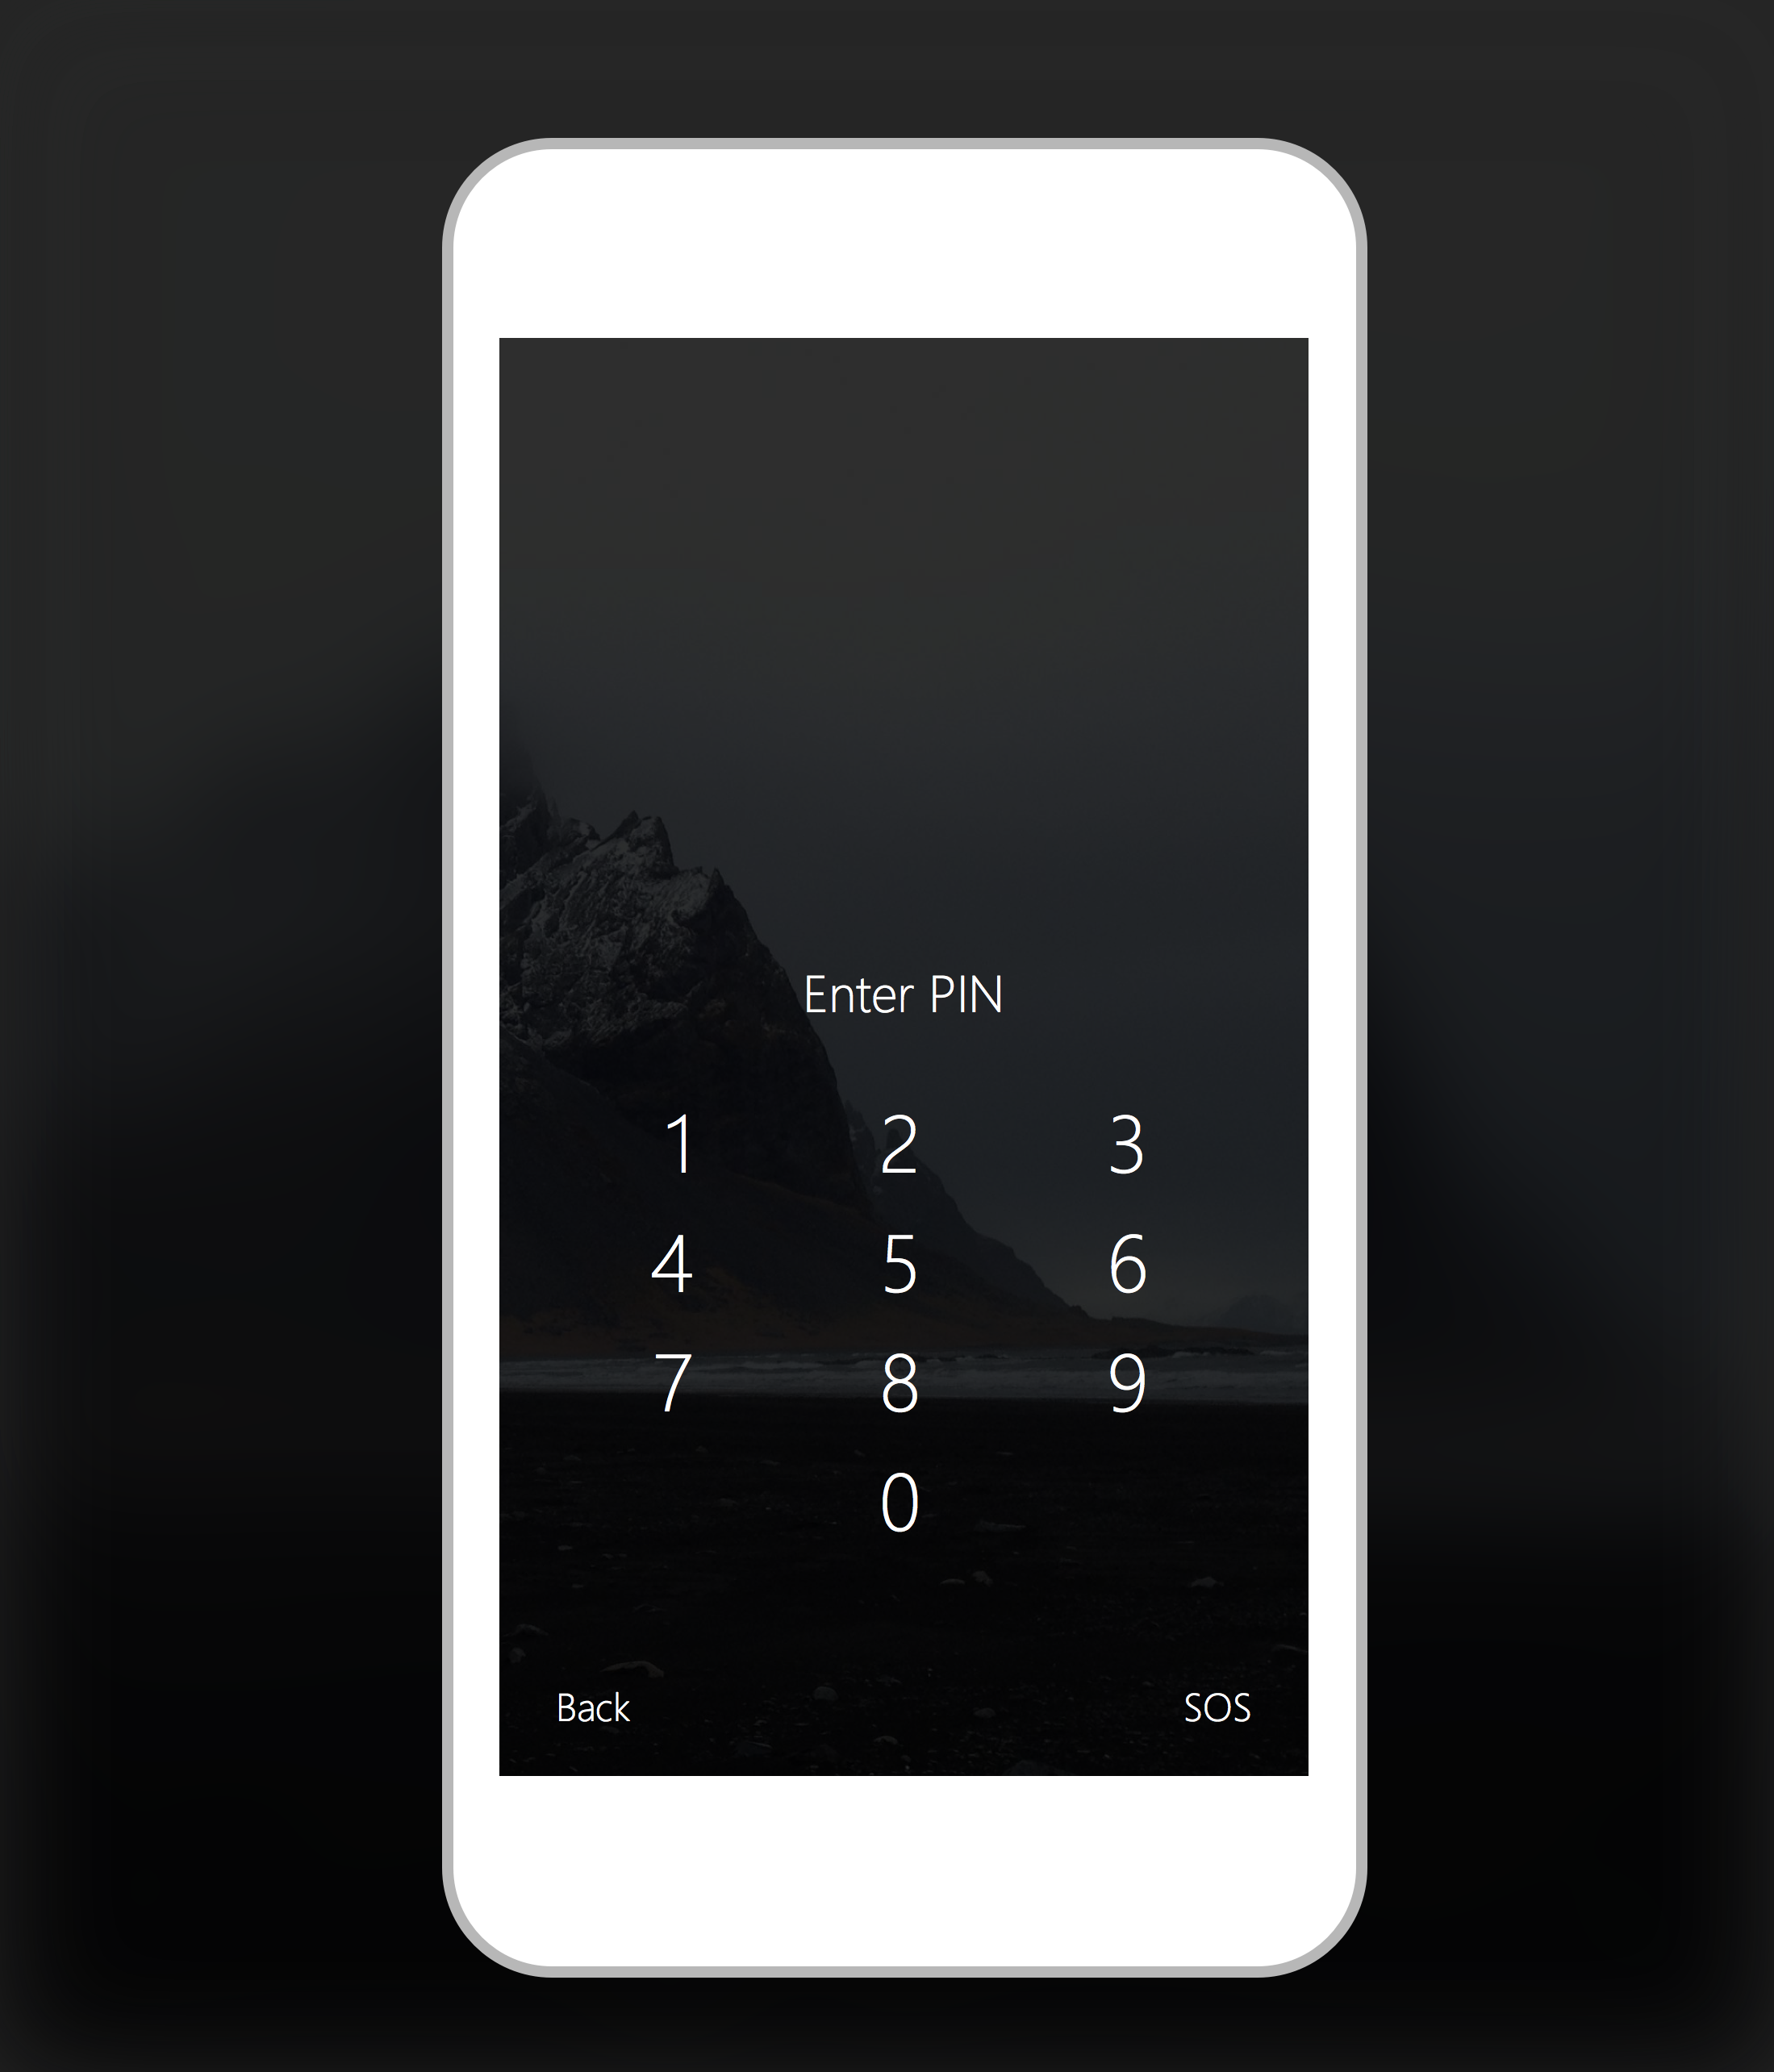 Mobile App Home Screen Redesign: Windows 10 Mobile: PIN Entry Redesign By Willza3 On DeviantArt